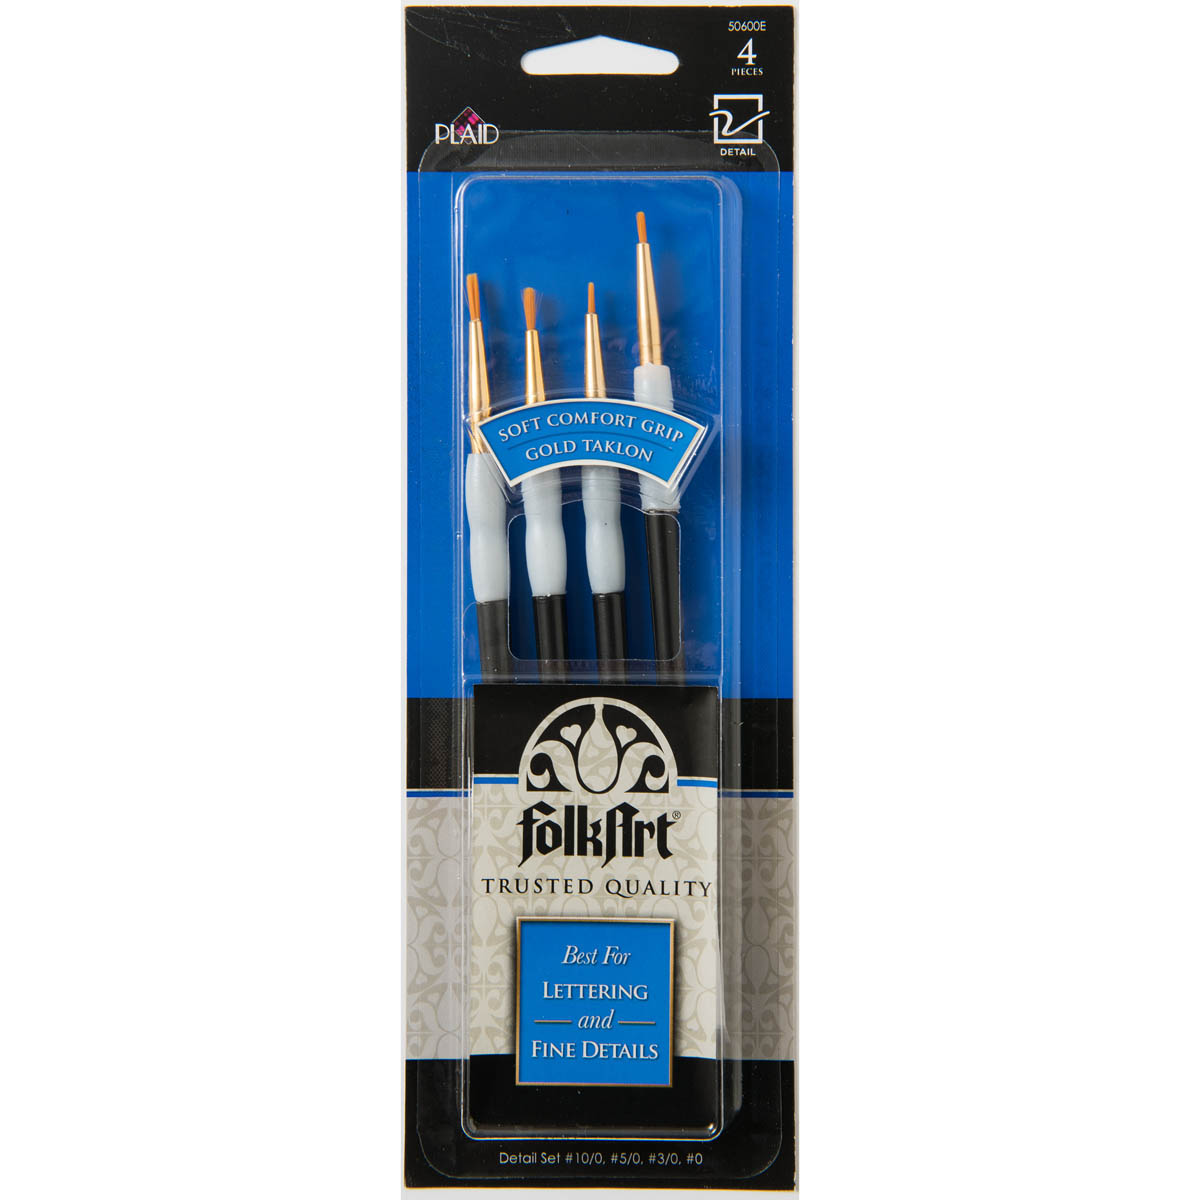 FolkArt ® Brush Sets - Soft Grip - Detail Brush Set - 50600E